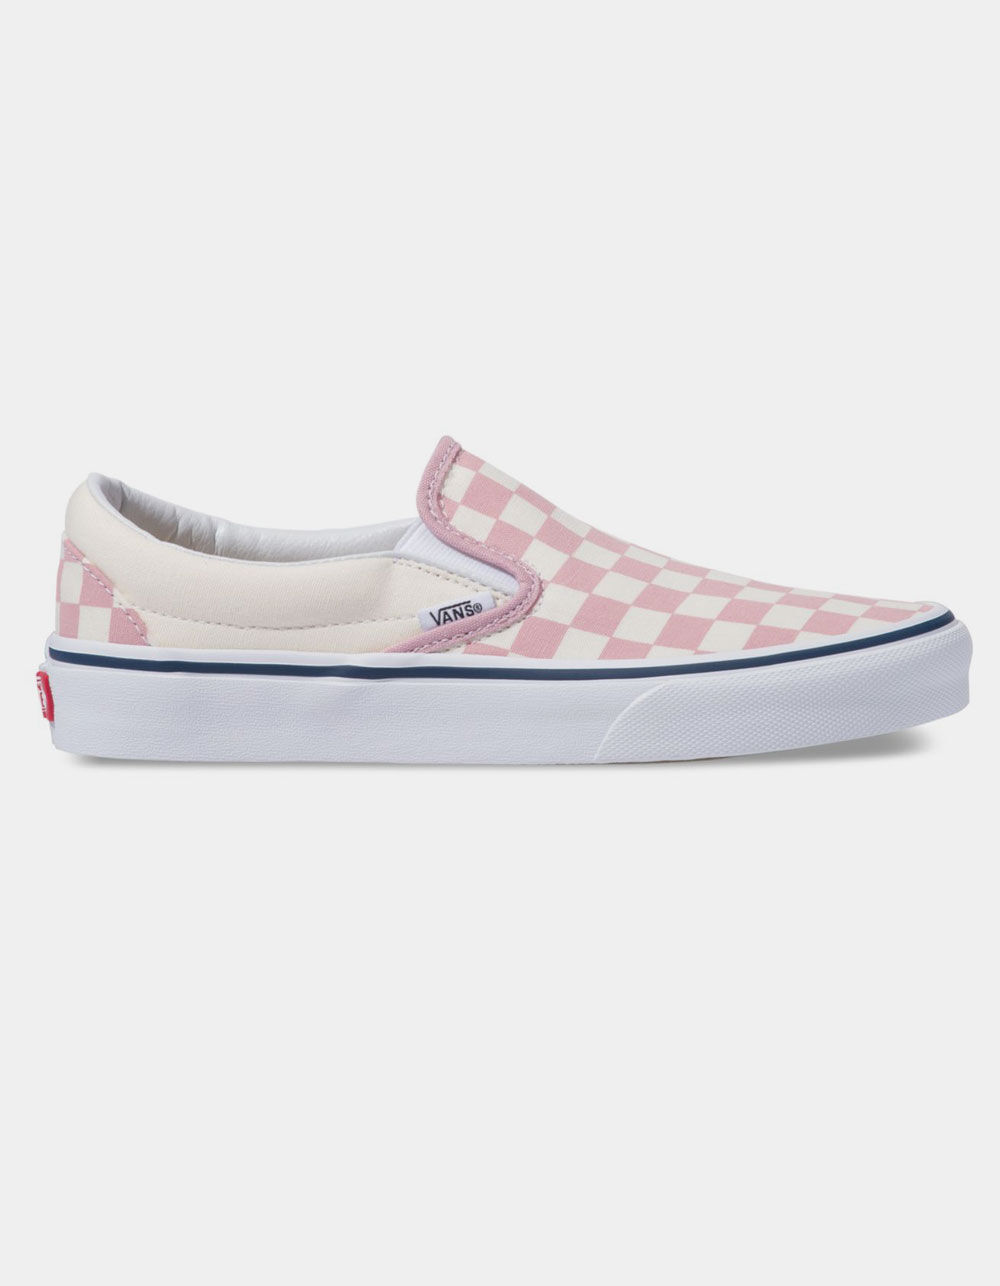 VANS Checkerboard Classic Slip-On Zephyr Pink Shoes